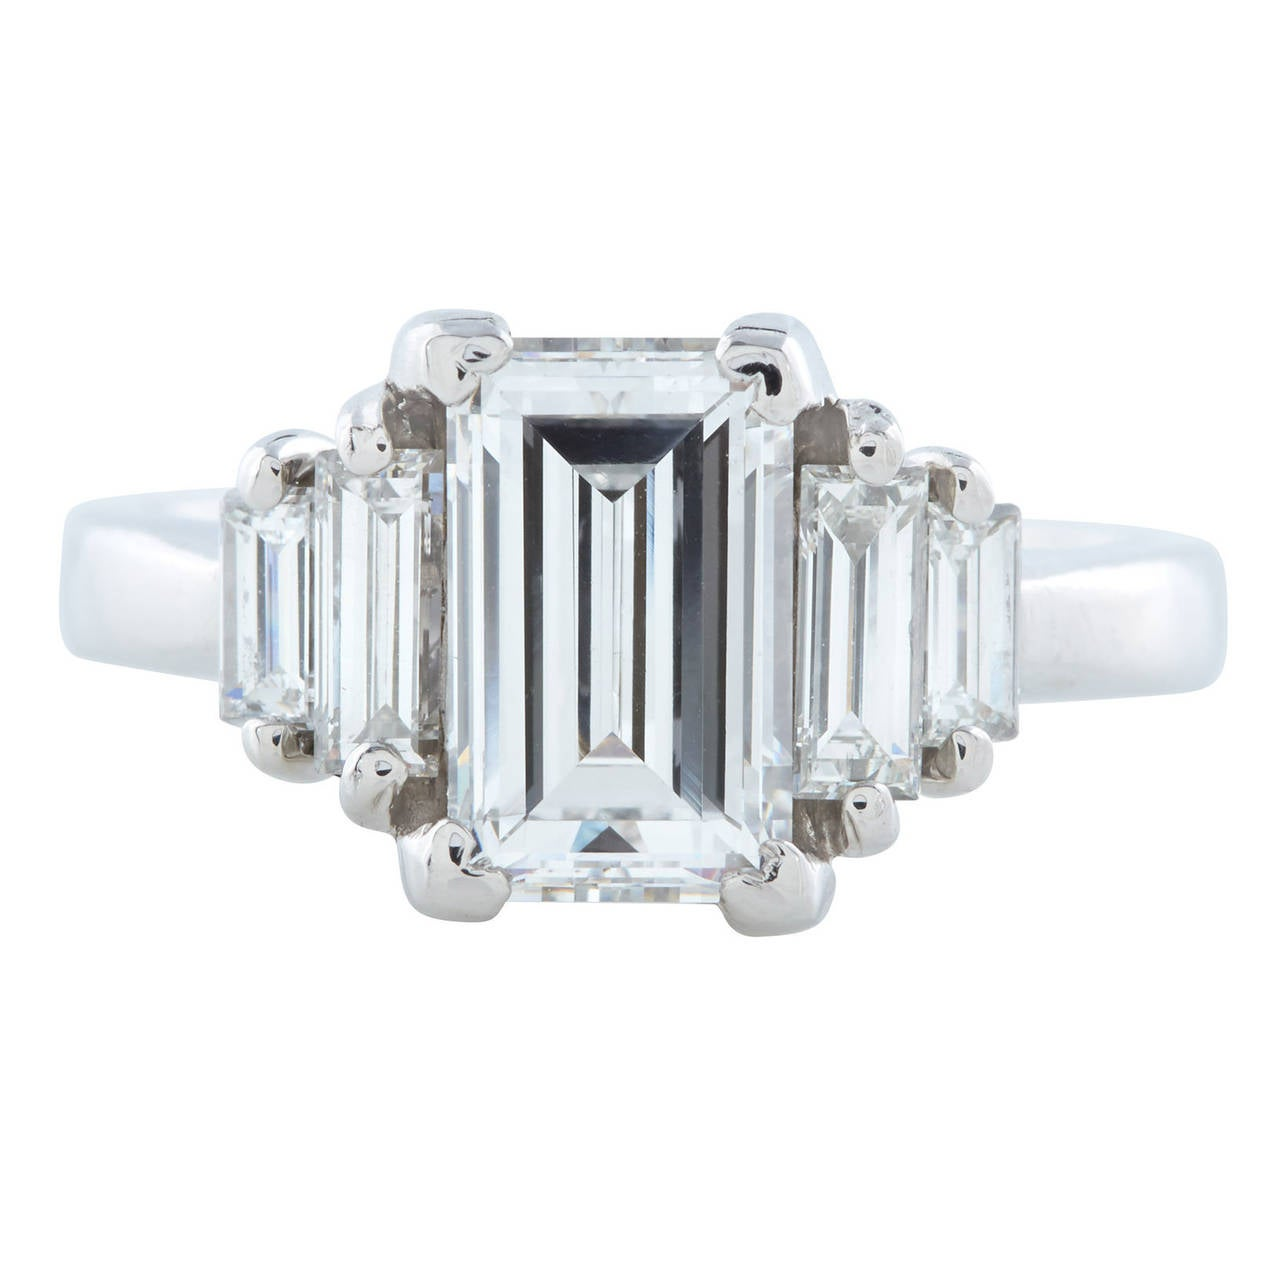 2 02 Carat GIA Cert Emerald Cut Diamond Platinum Engagement Ring at 1stdibs